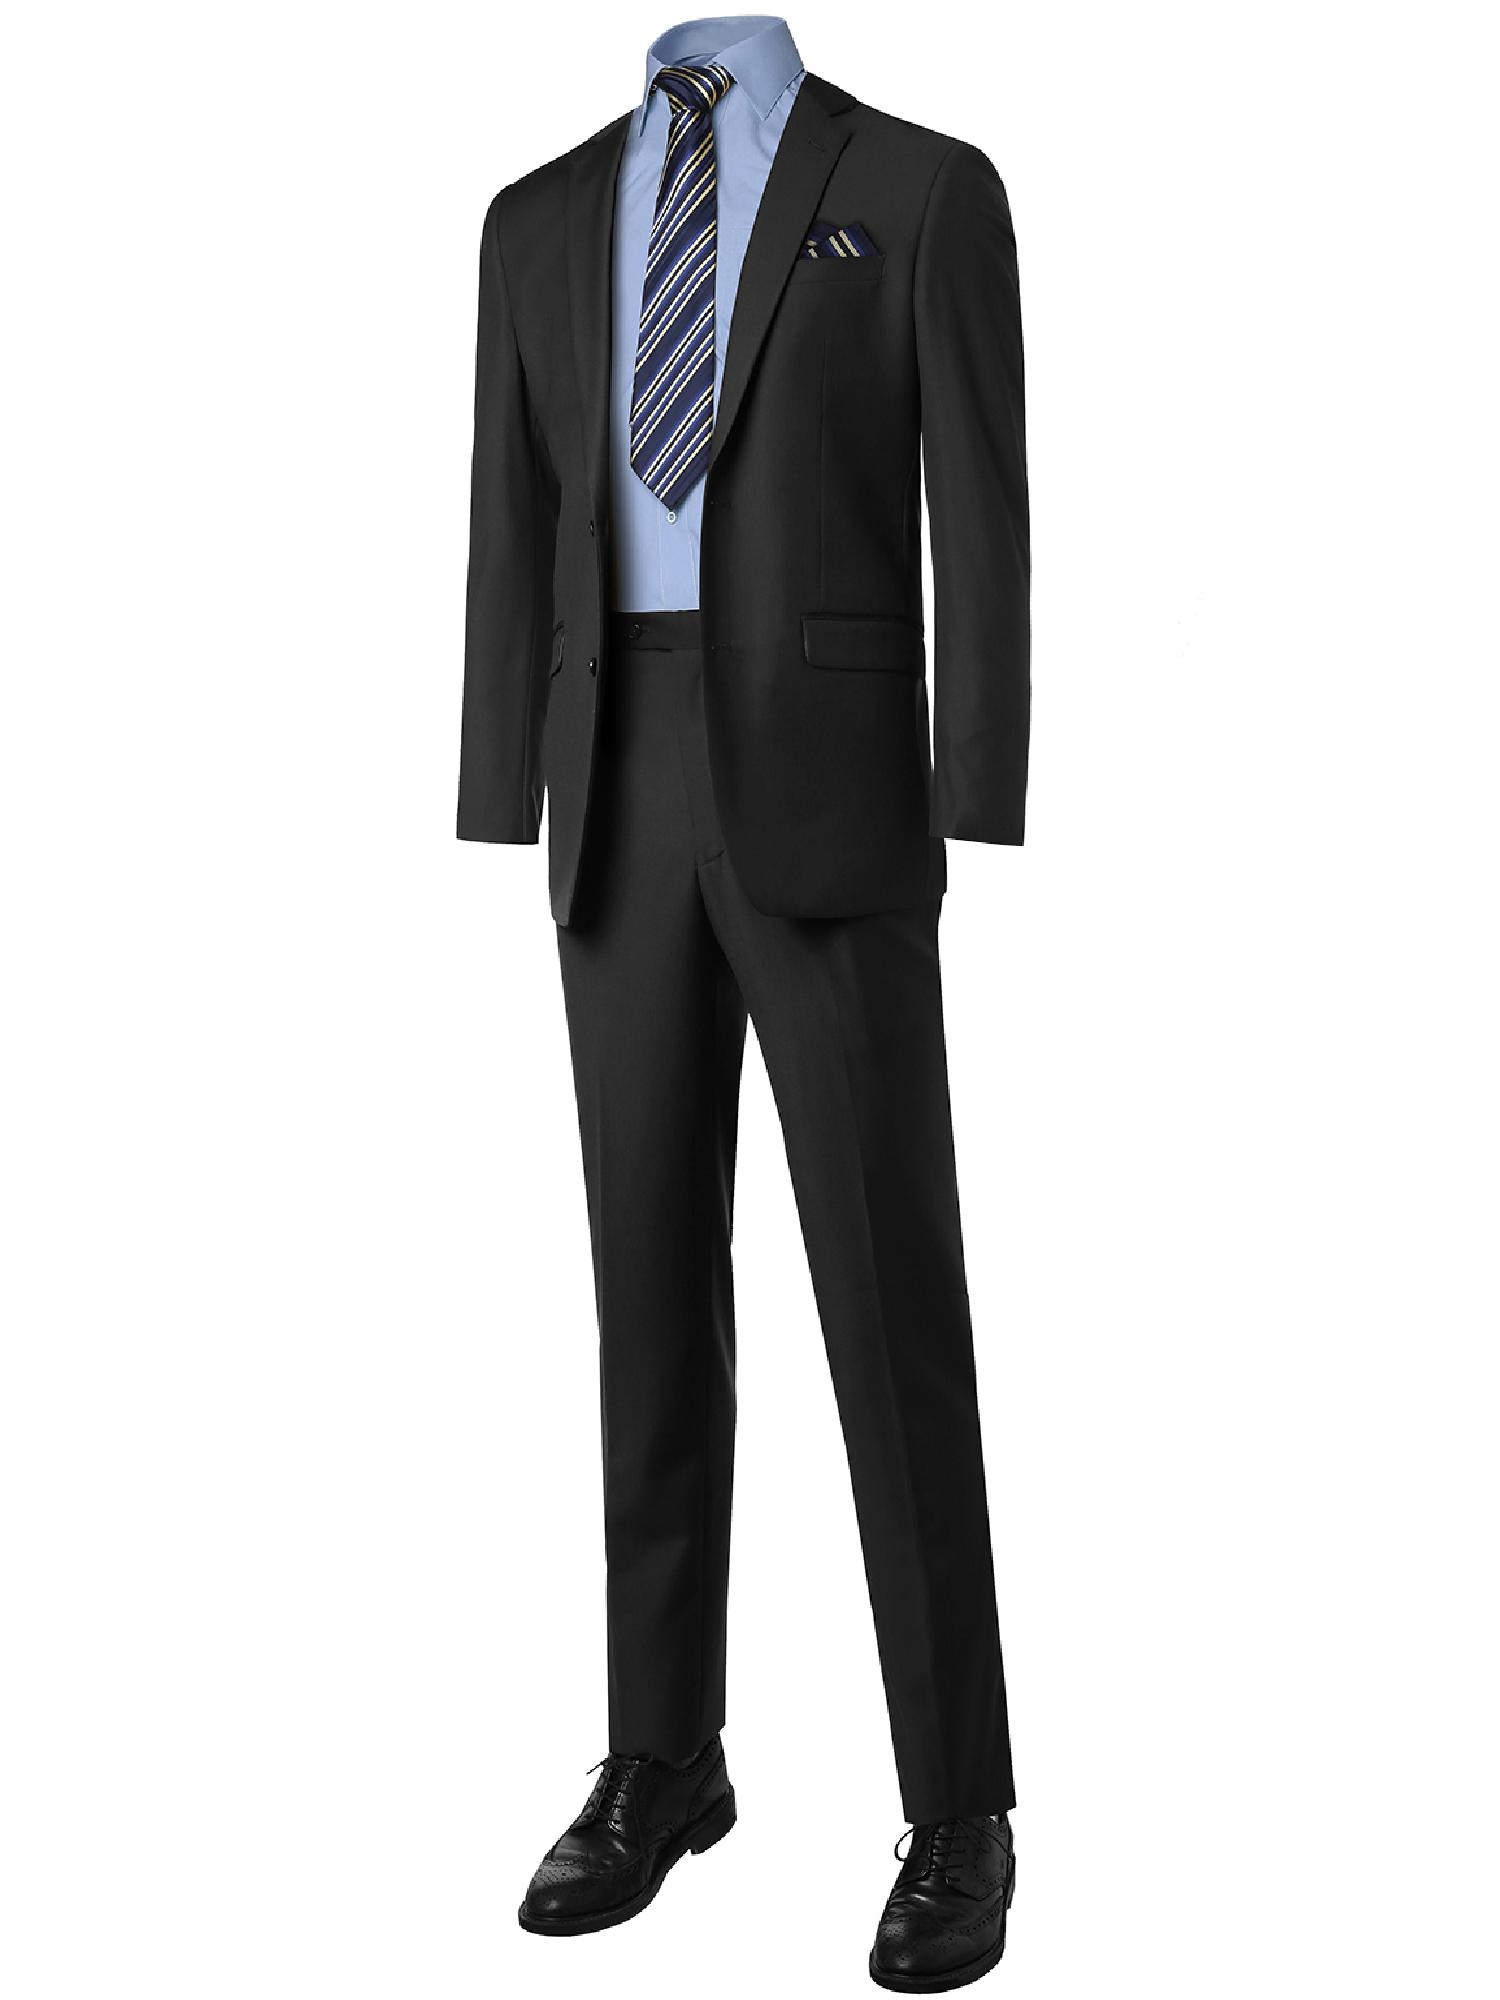 FashionOutfit Men's Contemporary Classic Regular Fit 2pcs Suit Blazer &Dress pants